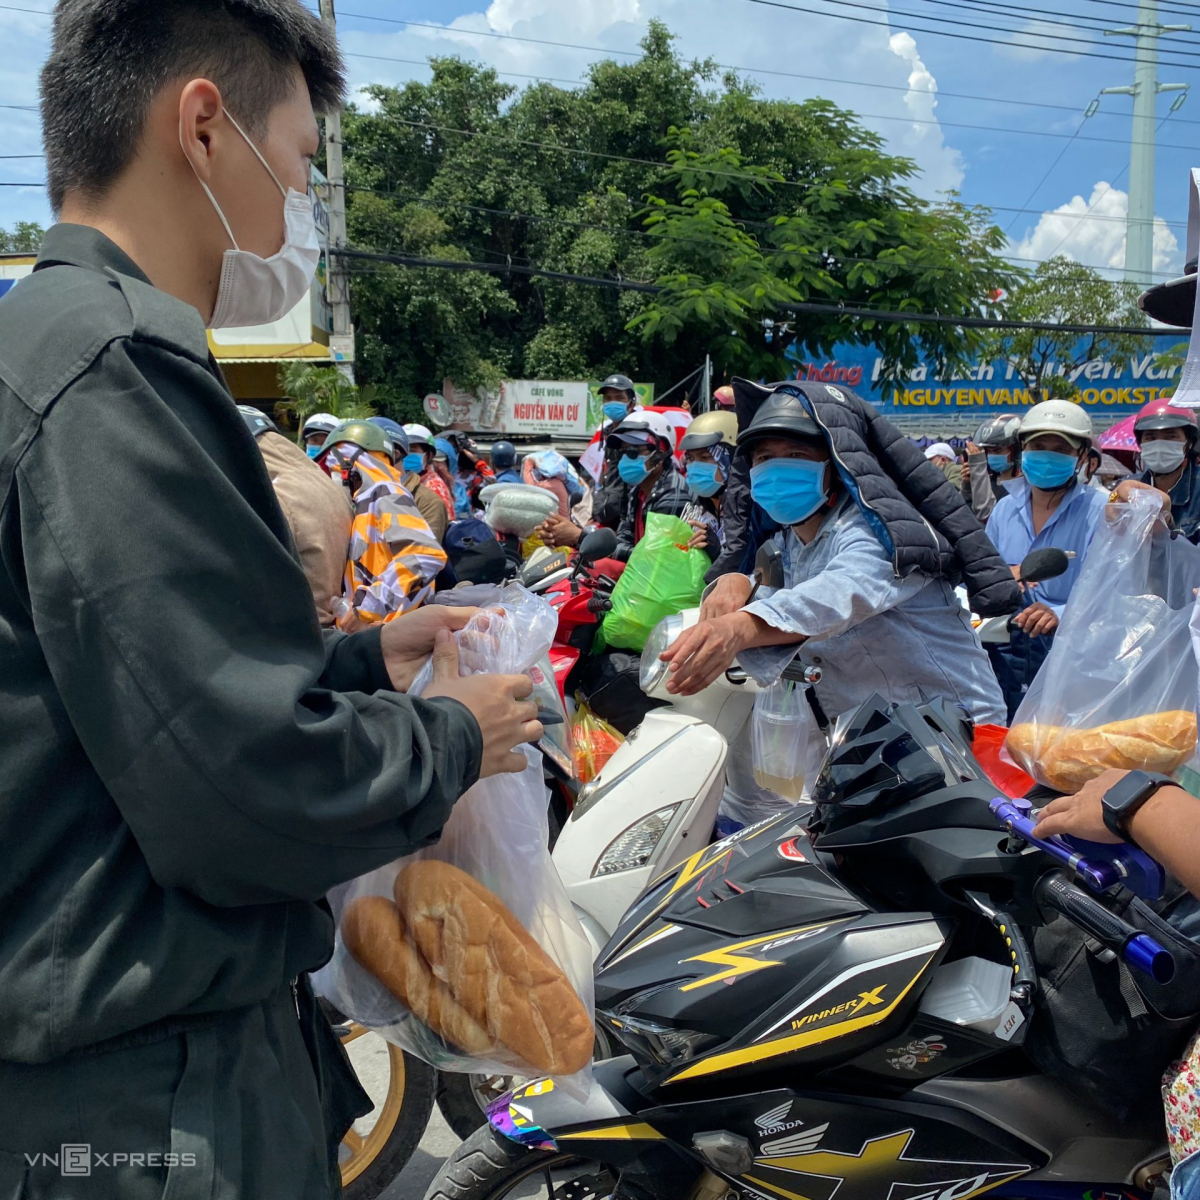 Local police provided migrants with pieces of bread.